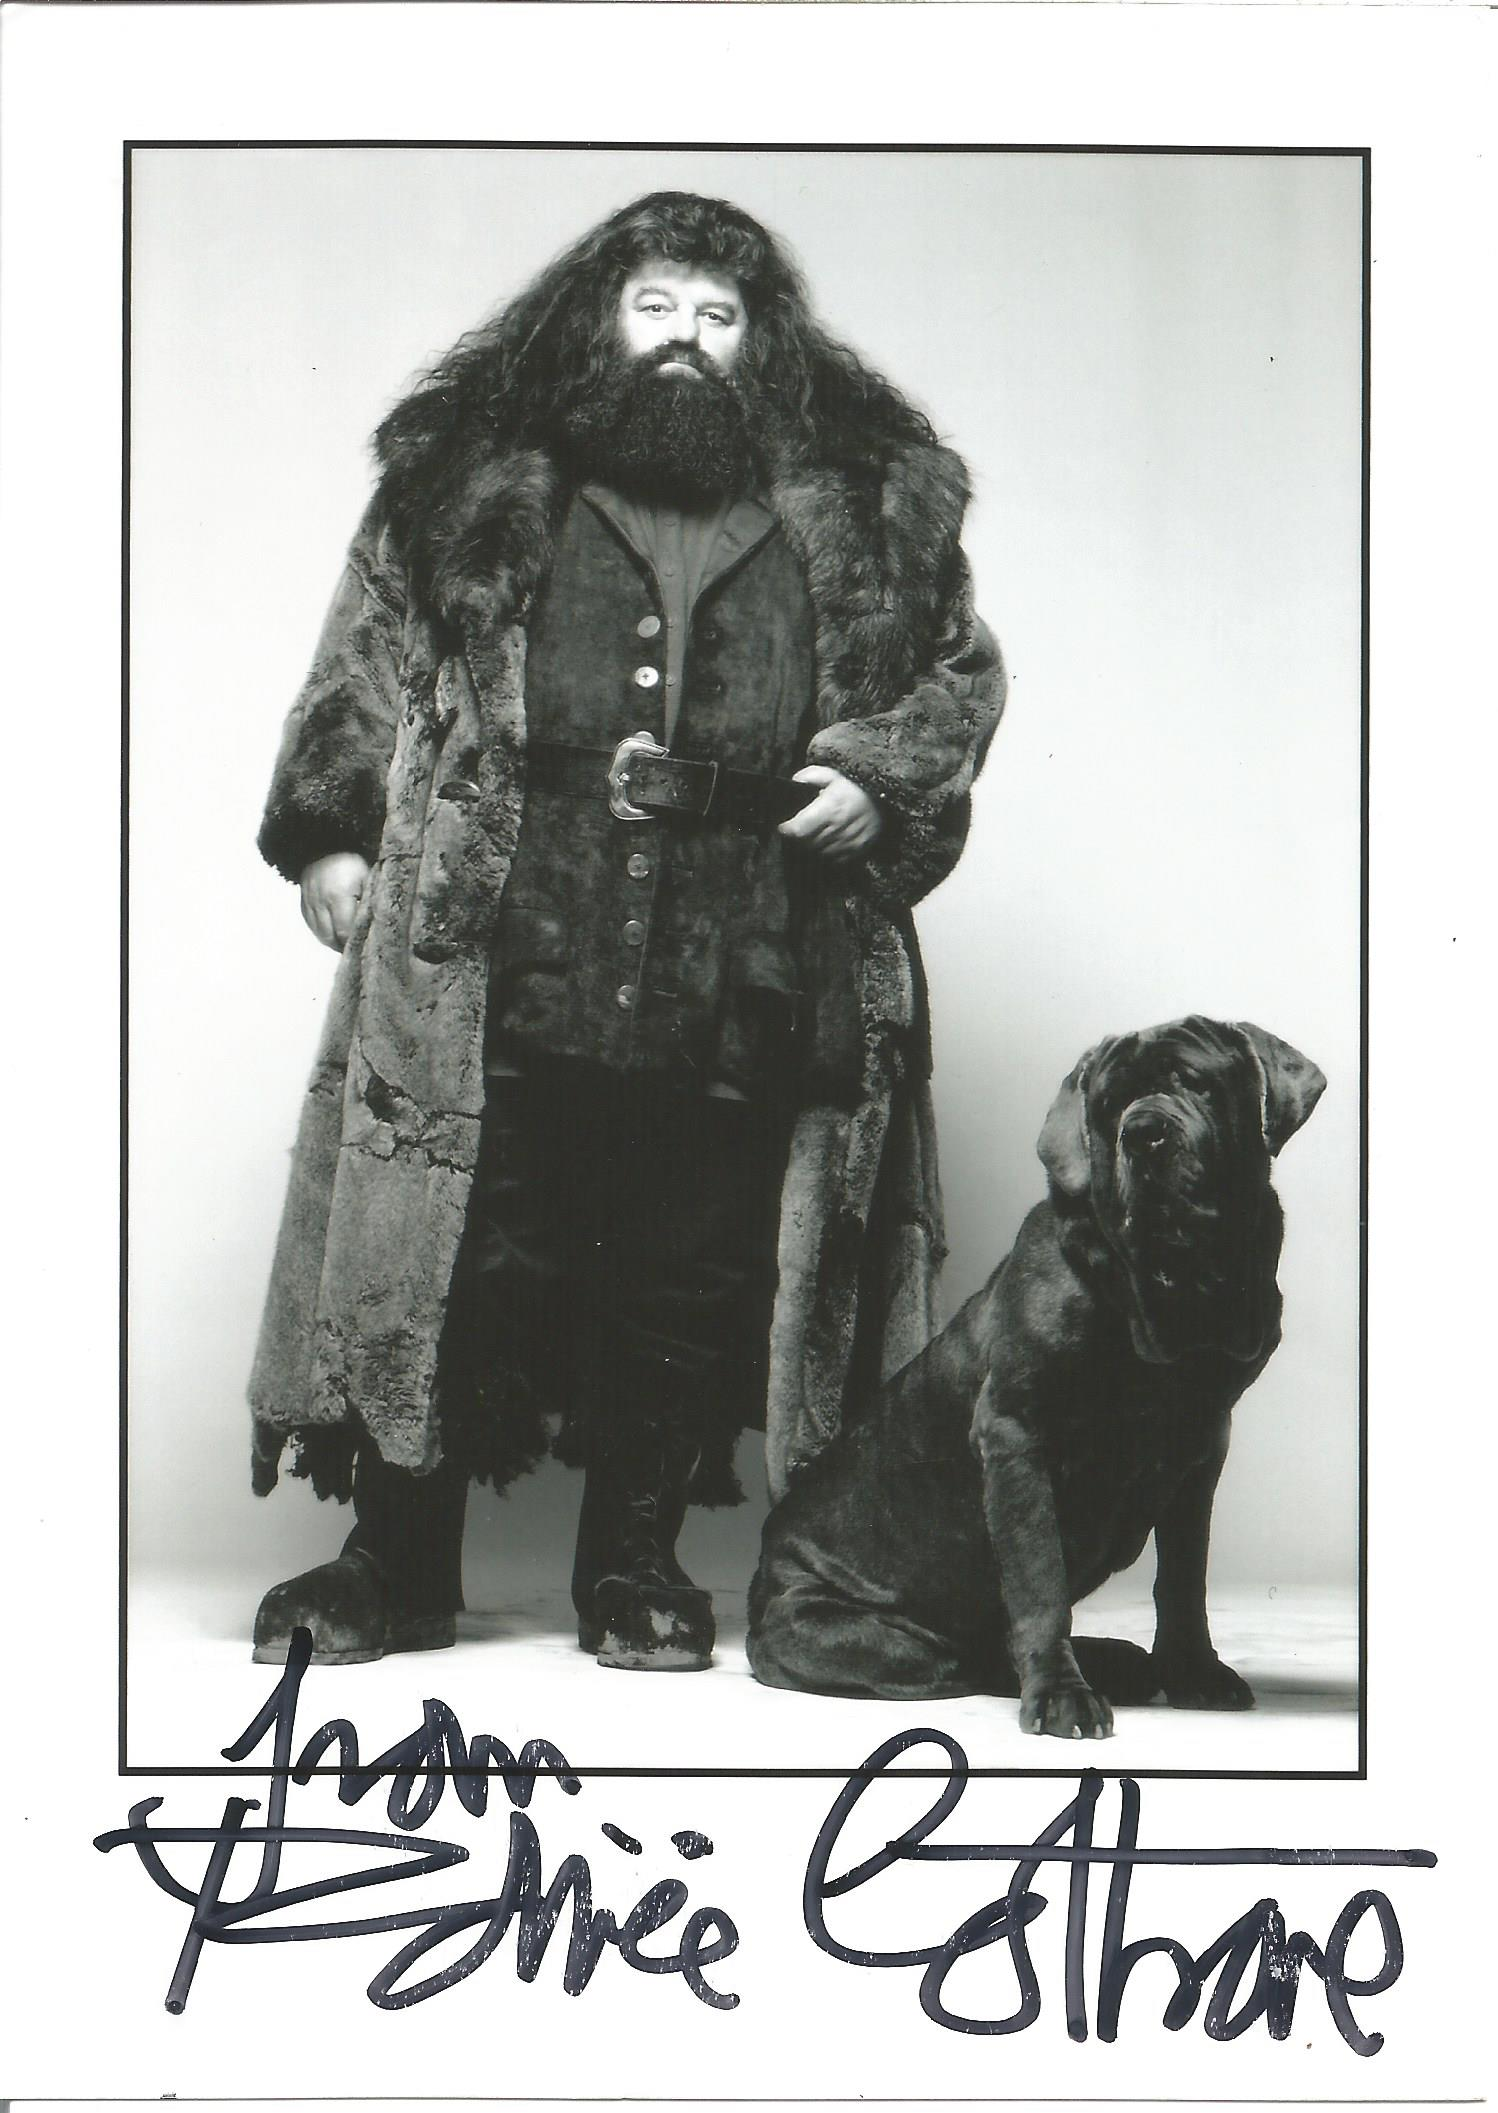 Actor Robbie Coltrane signed 7x5 colour photo in character as Hagrid from the Harry Potter film